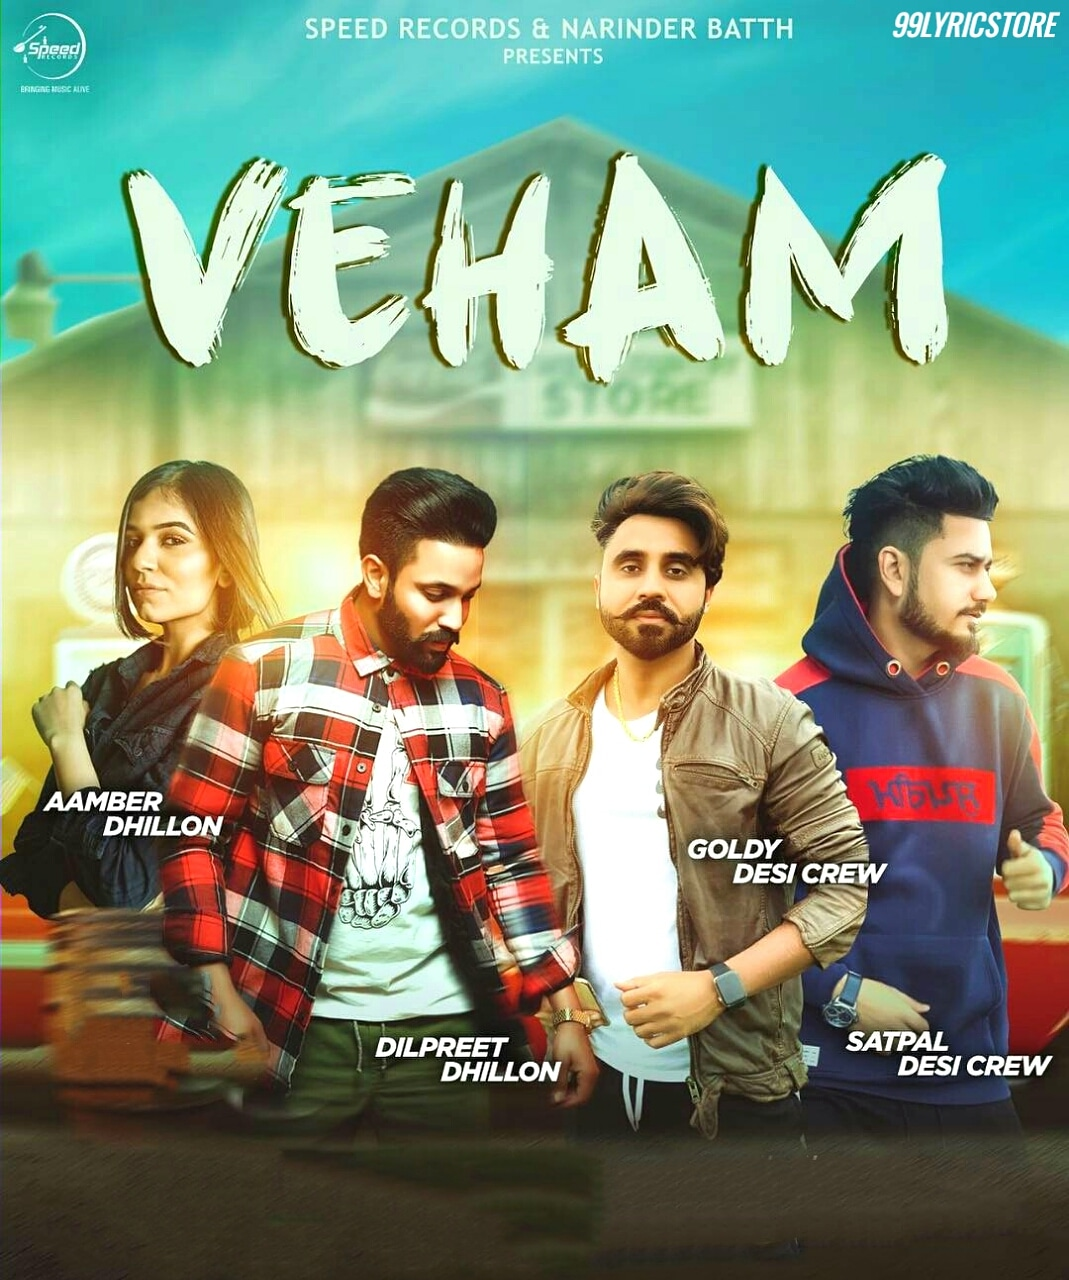 Veham Lyrics Sung by Dilpreet Dhillon